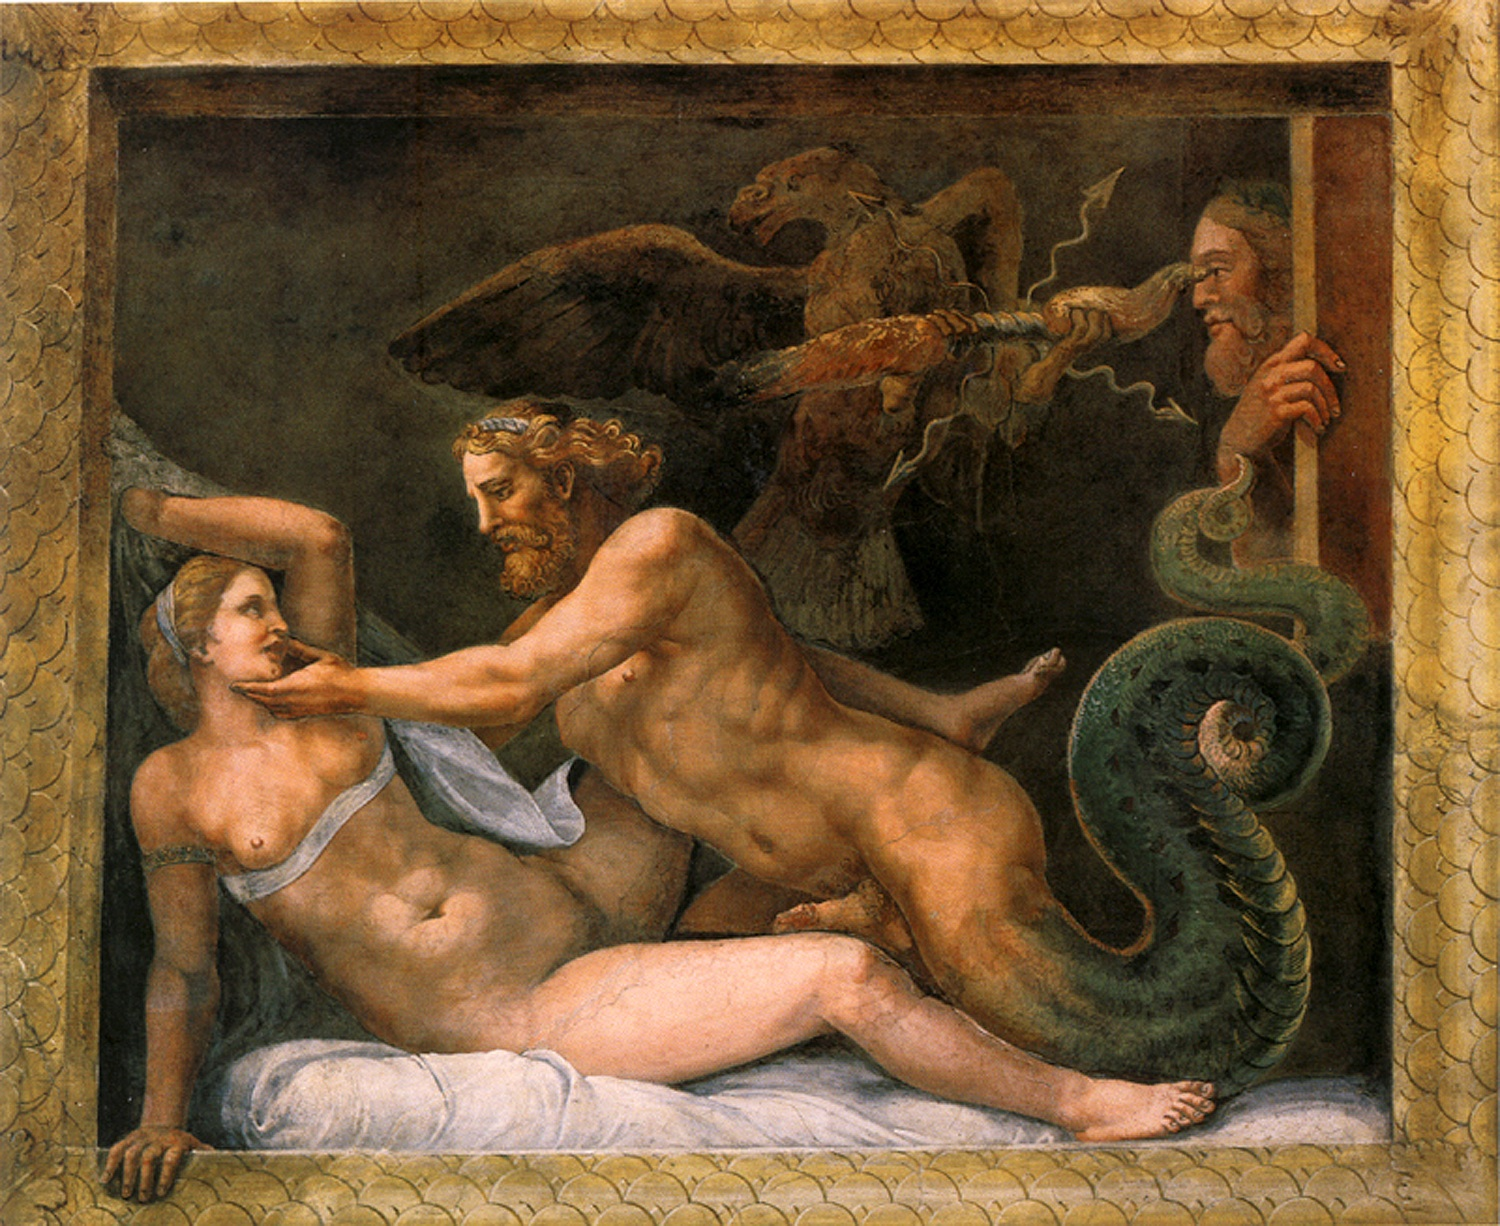 porn pics of eve and satan having sex